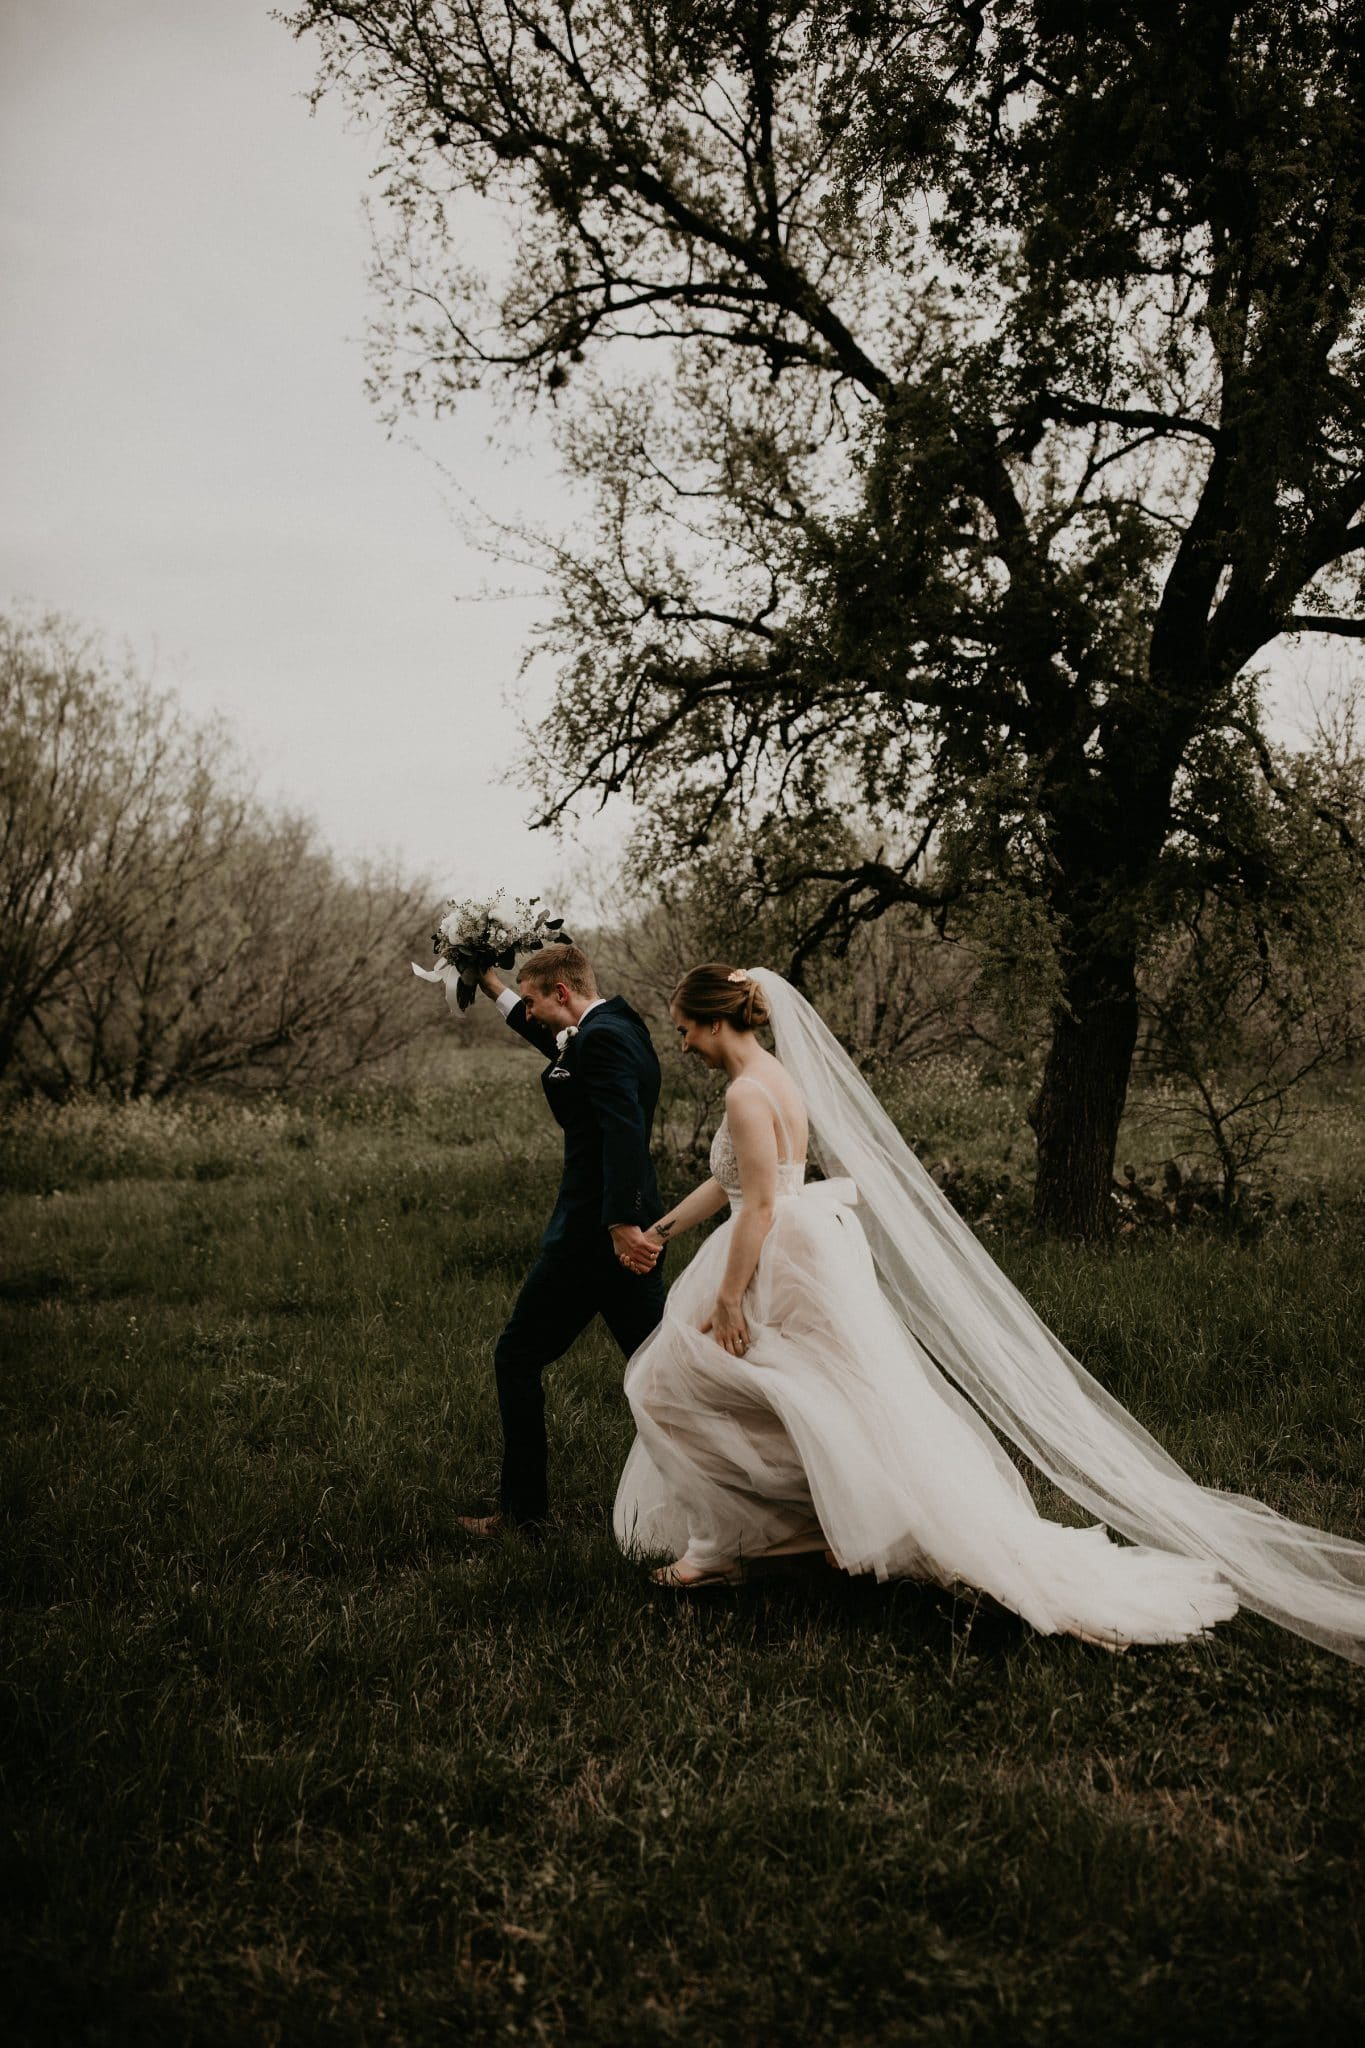 Groom holding bride's bouquet in the air as if celebrating as he walks away holding the brides hand in the grass of the Brodie Homestead in Sunset Valley, Texas. Photograph by Austin, Texas wedding photographer Nikk Nguyen.